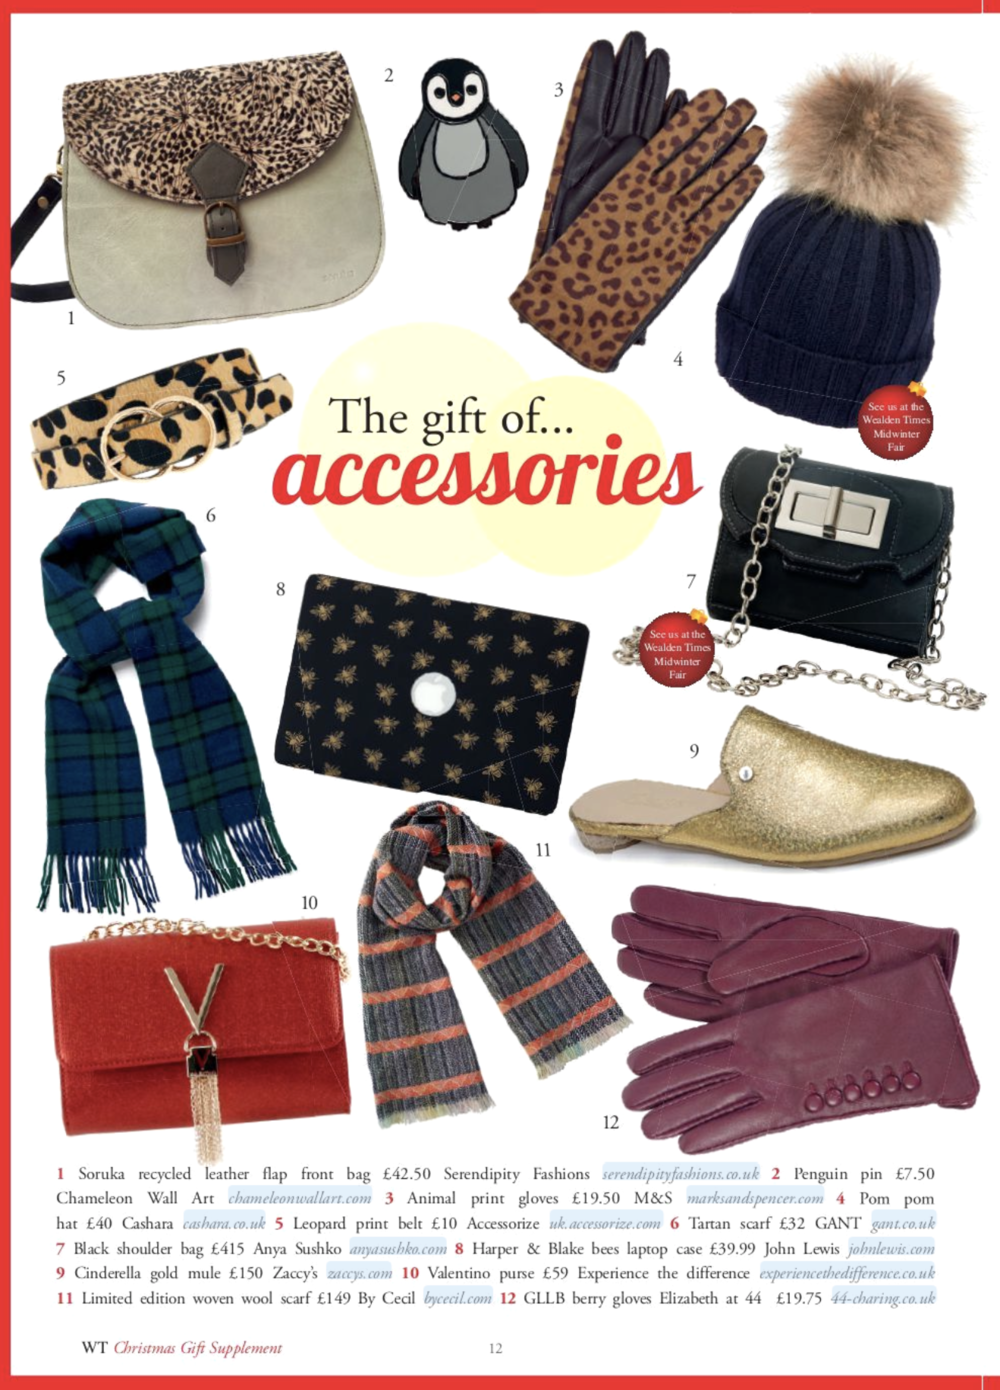 The gift of accessories